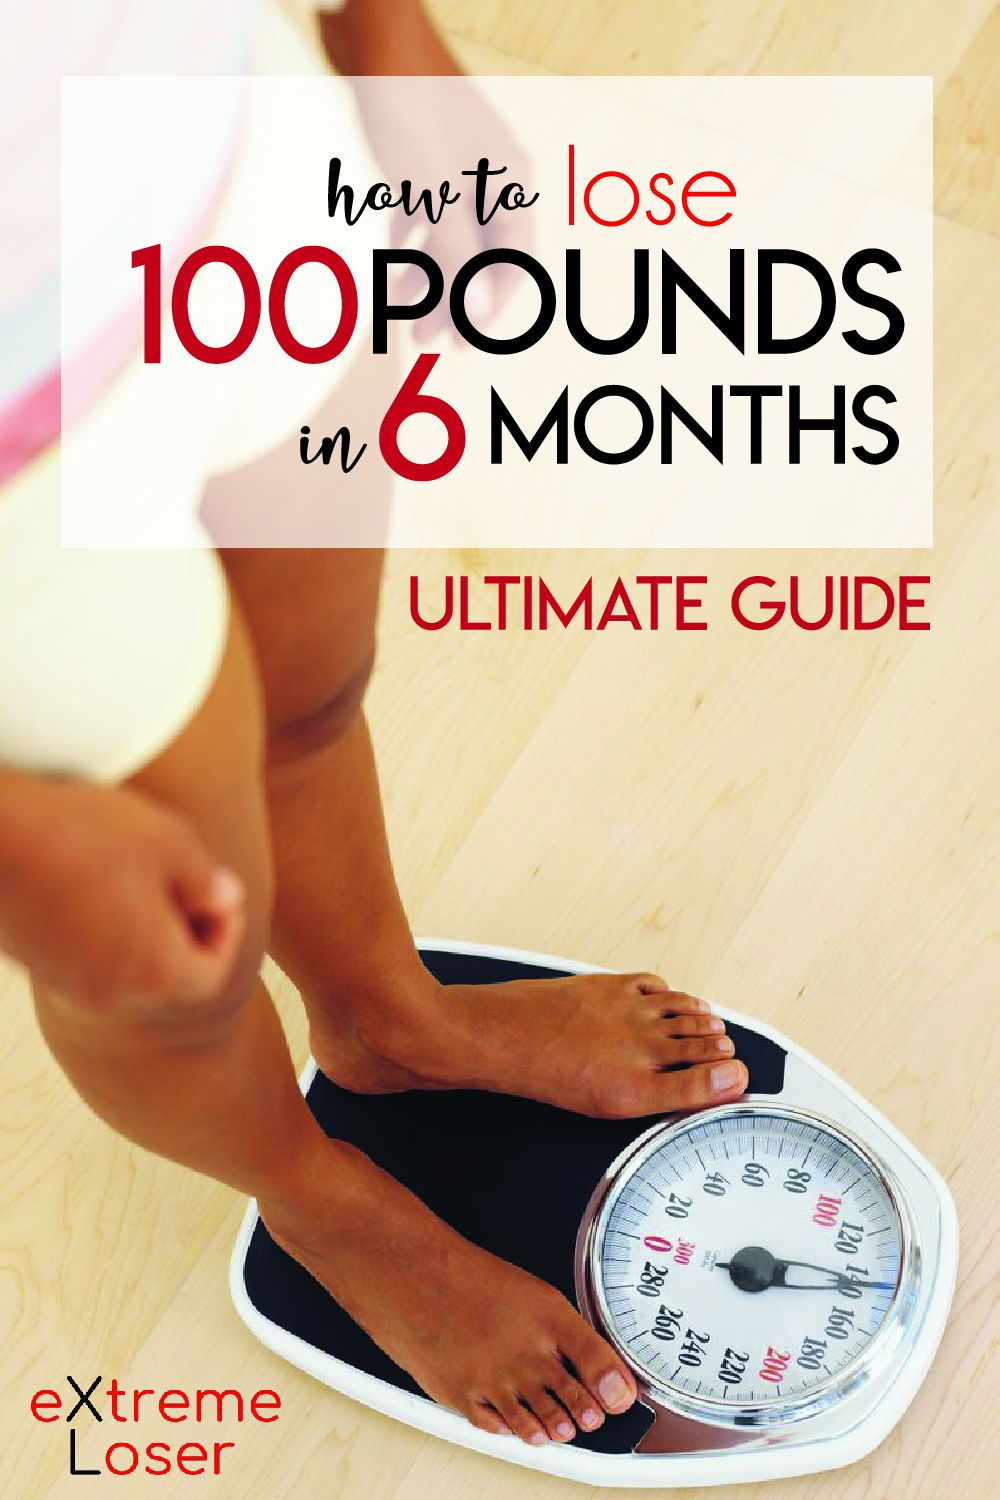 How To Lose 100 Pounds In 6 Months Complete Guide Fat Loss For